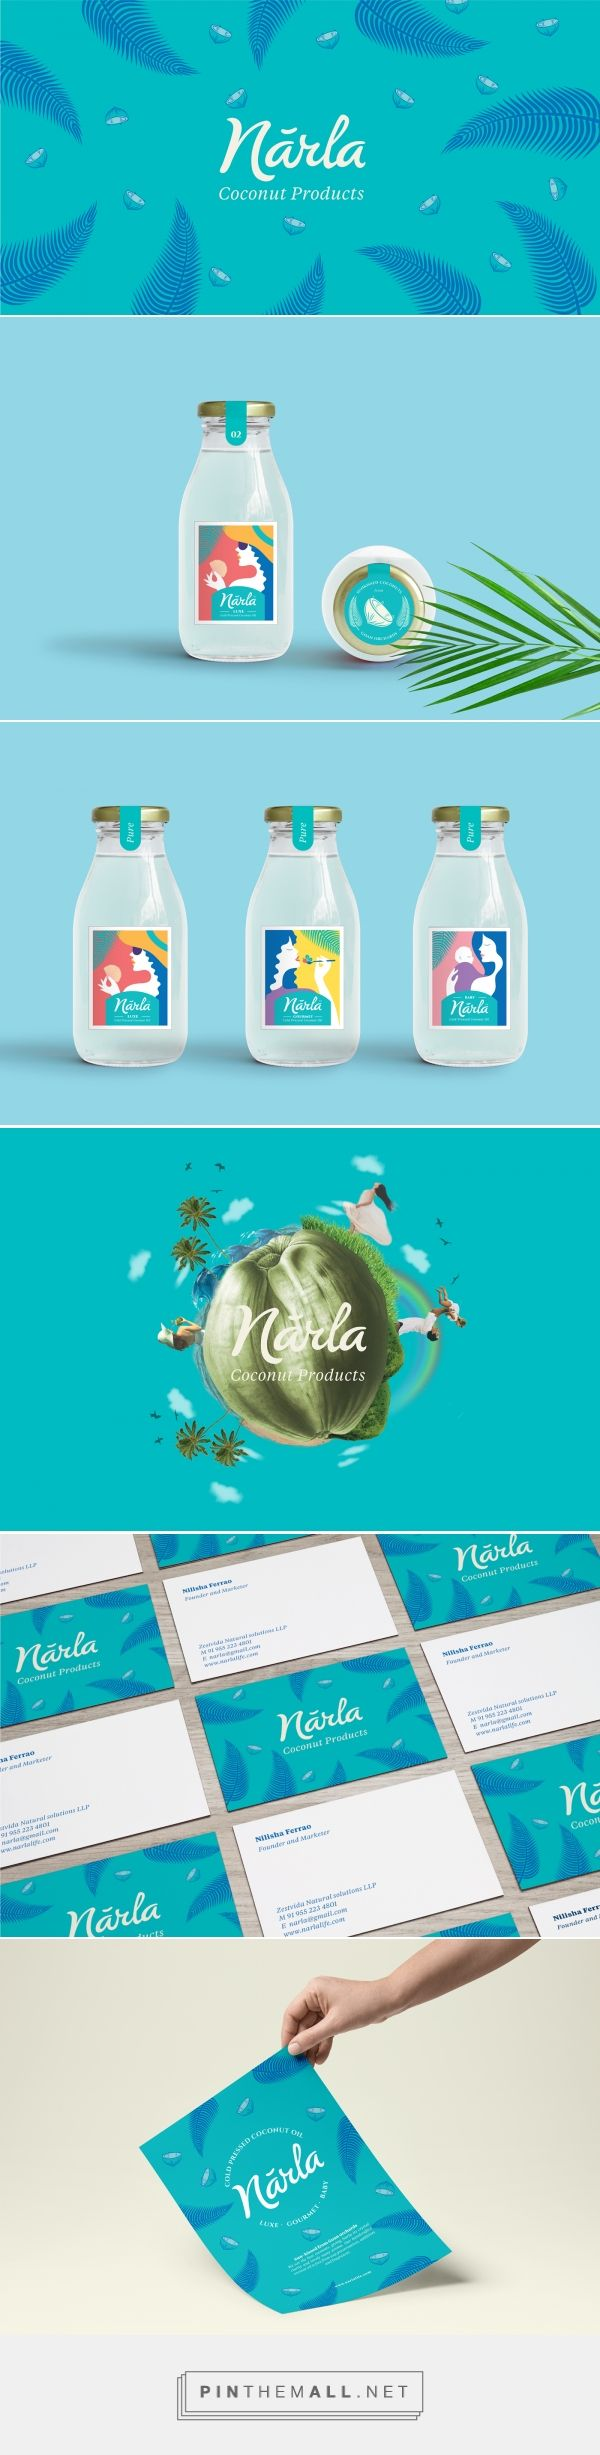 Narla Coconut Product Packaging by VillaCMYK Design | Fivestar Branding Agency – Design and Branding Agency & Curated Inspiration Gallery #packaging #packagingdesign #branding #brandidentity #design #designinspiration